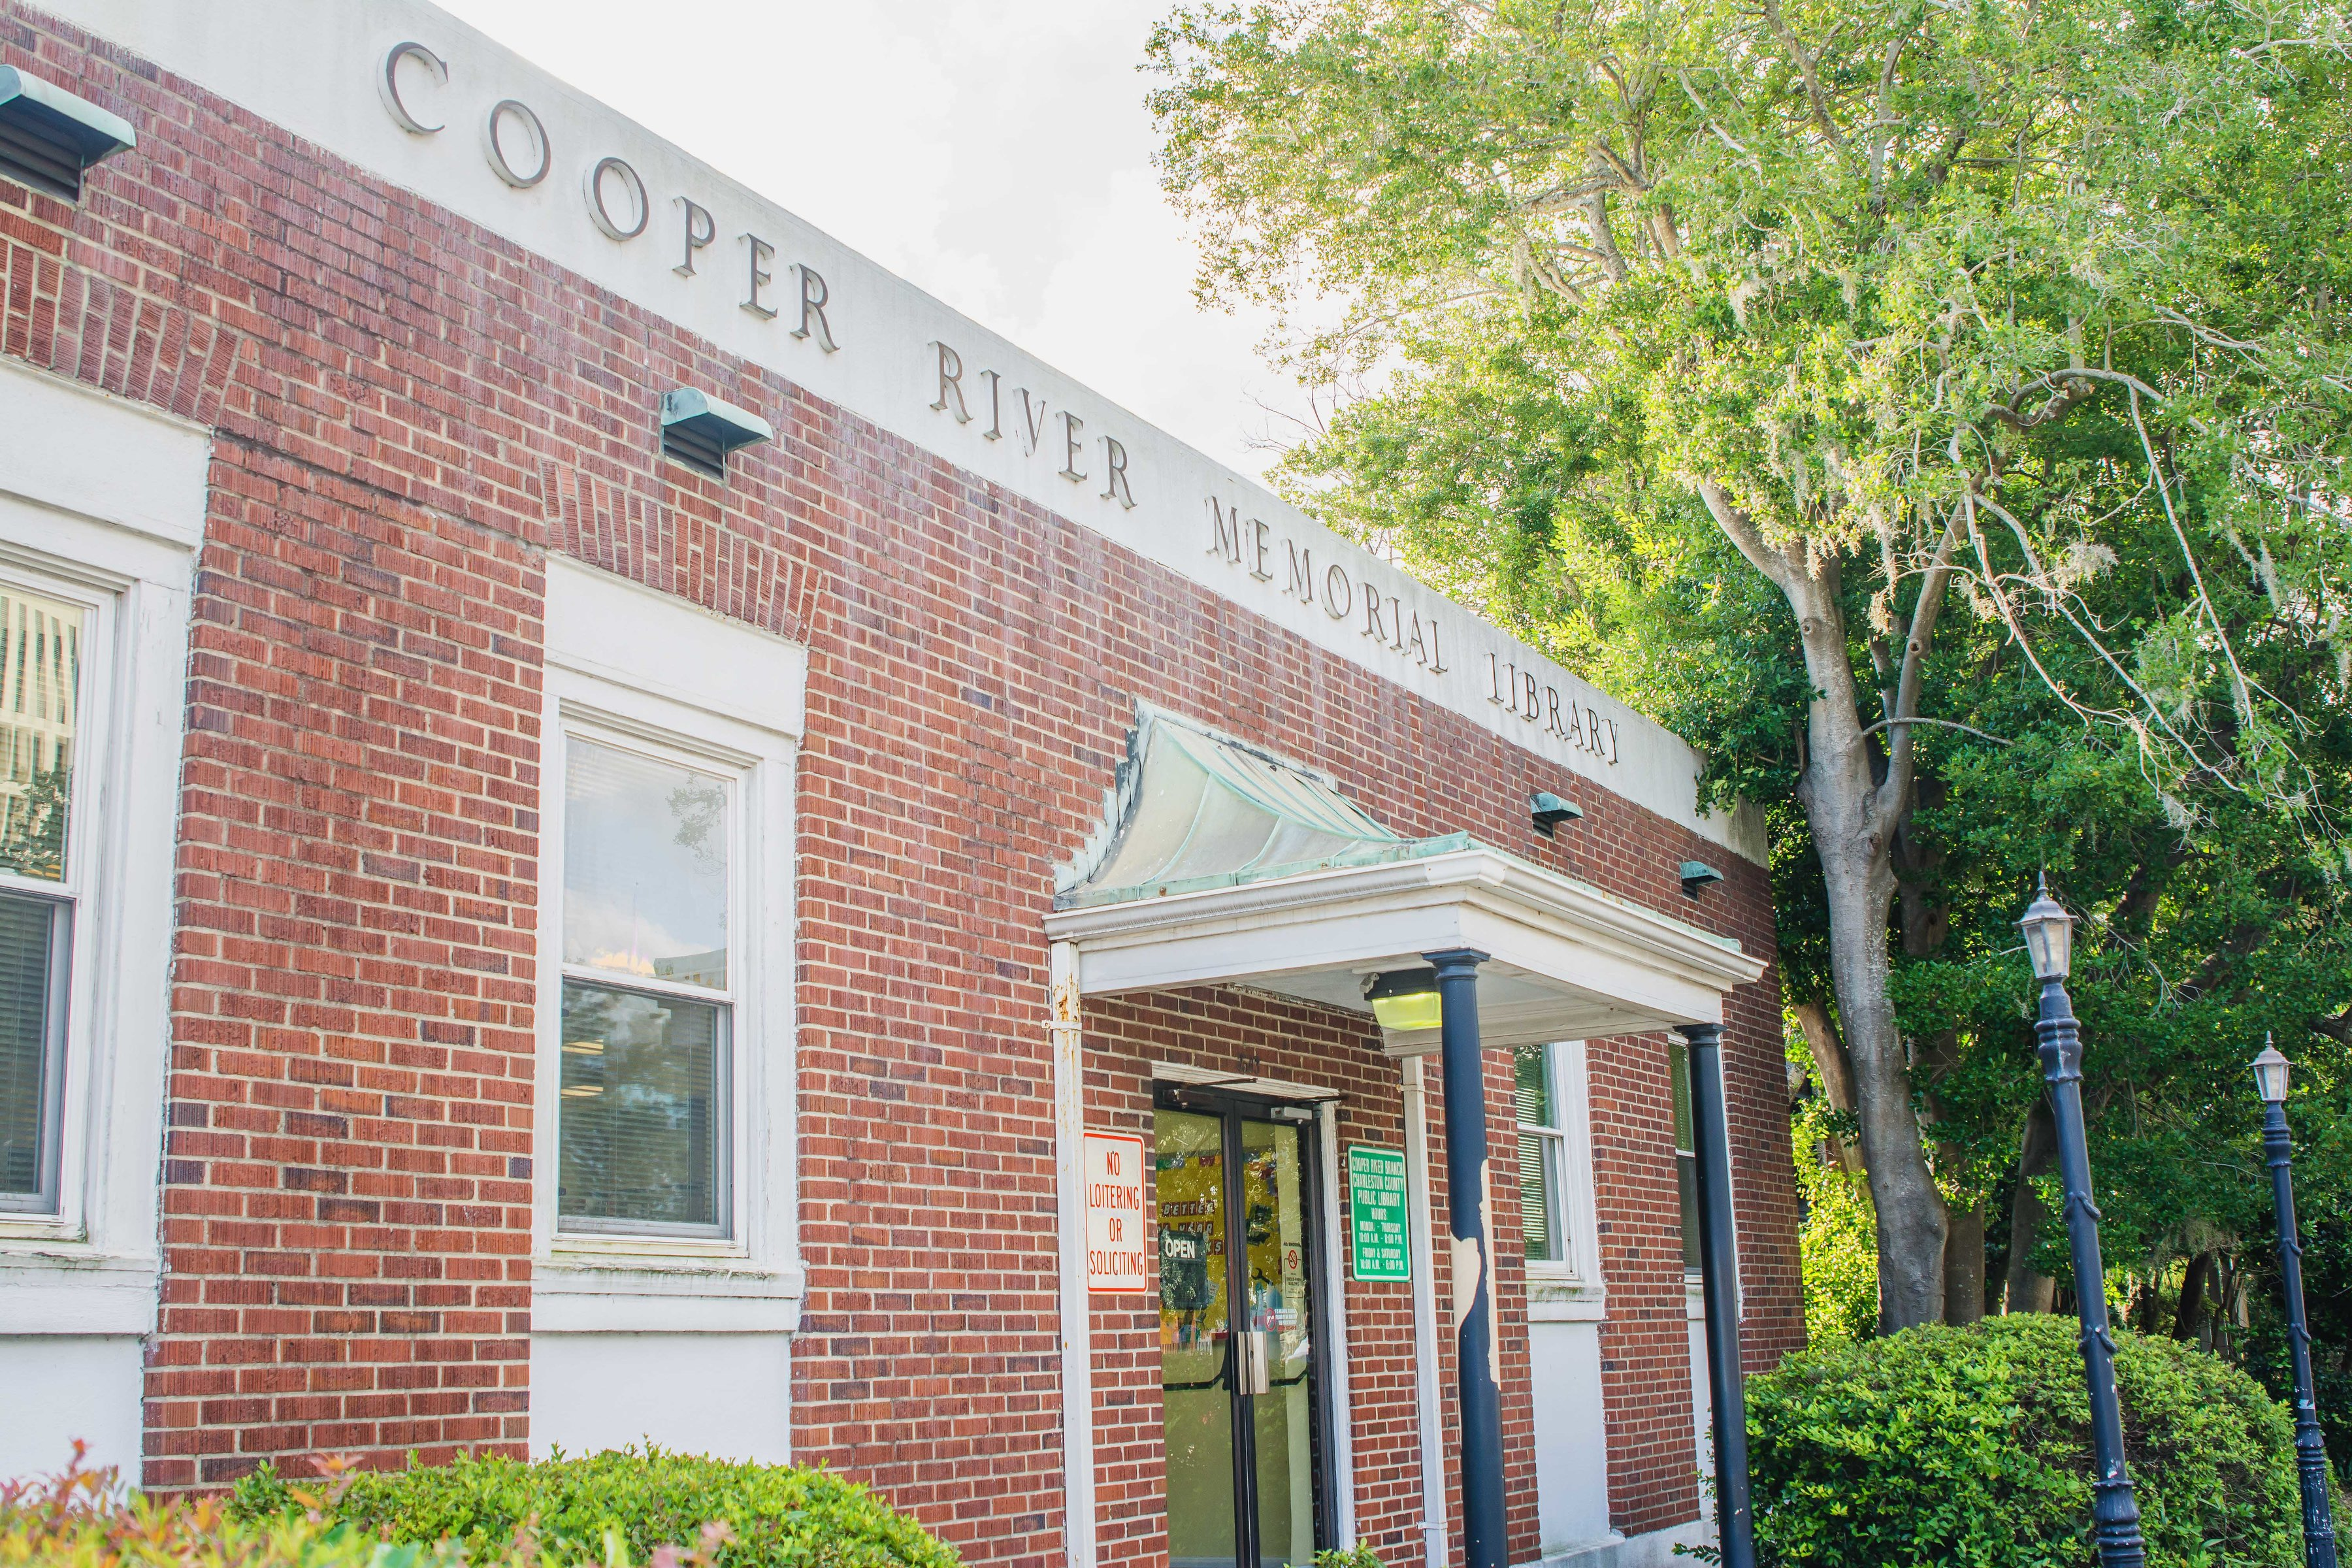 CCPL to close Cooper River Memorial Library on Tuesday, April 27